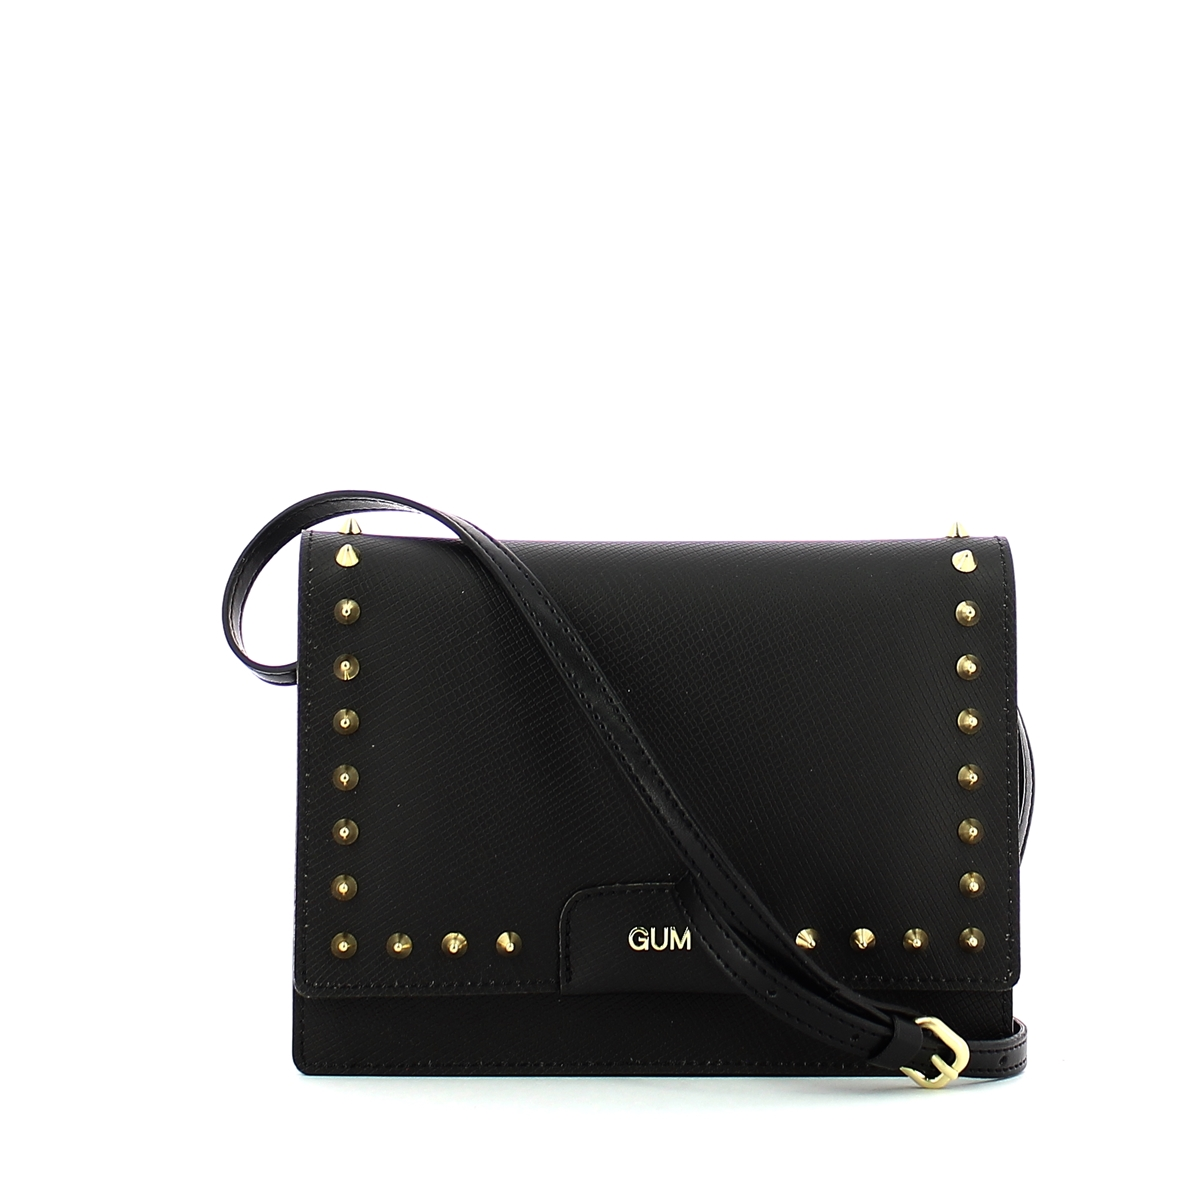 BS5826GUM-GOLD 001-NERO